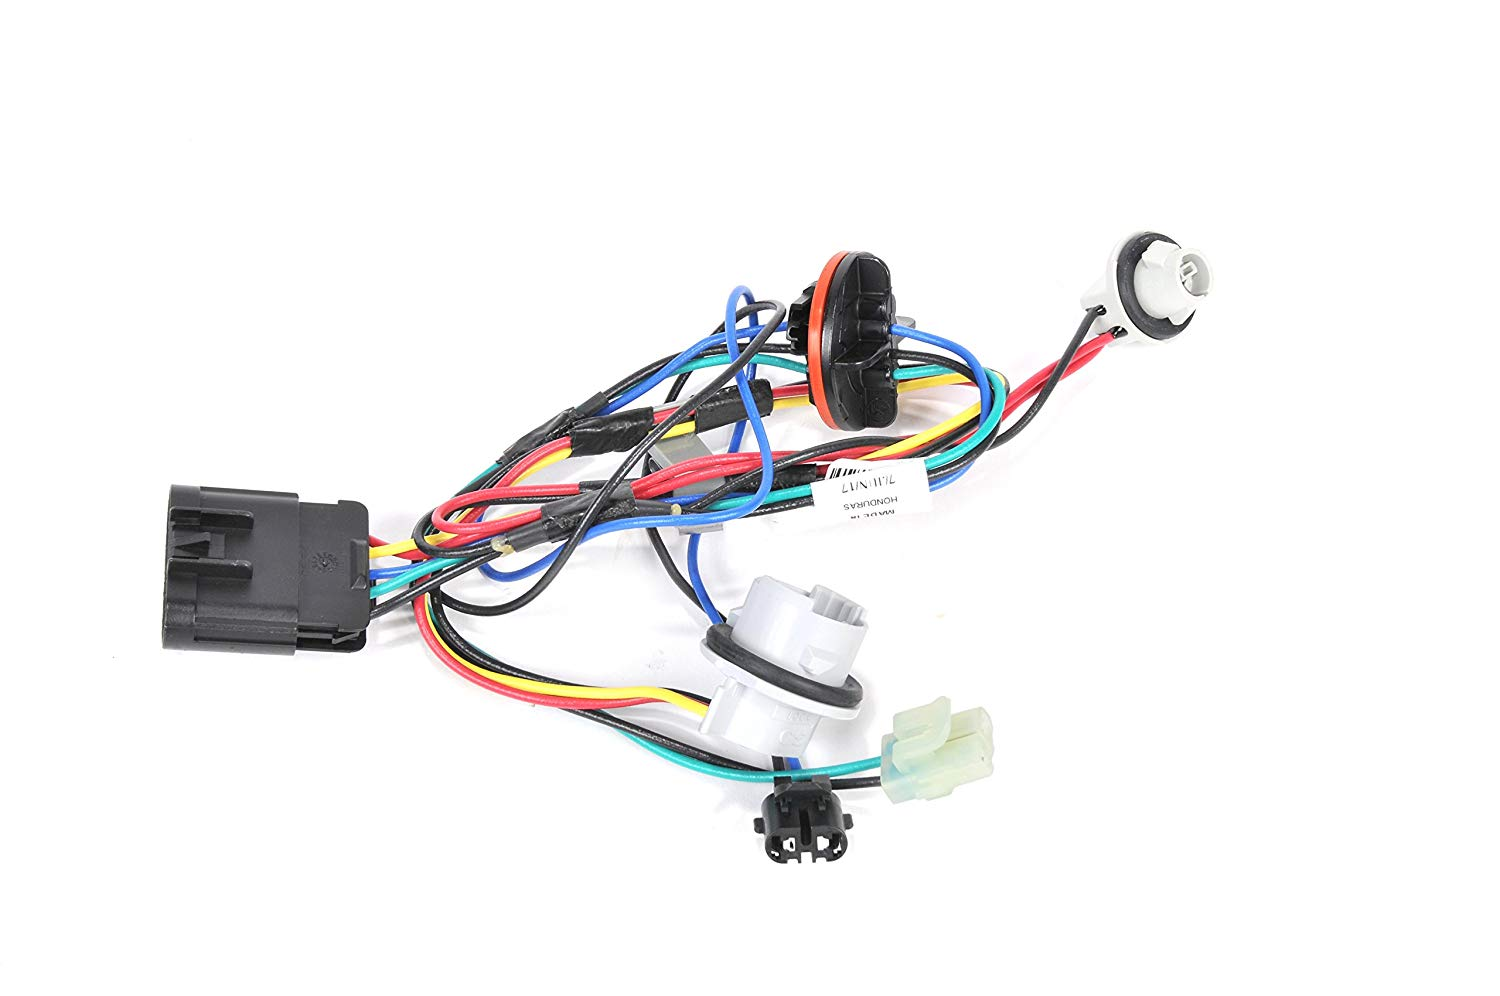 Acdelco Headlight Switch Wiring | Wiring Diagram on